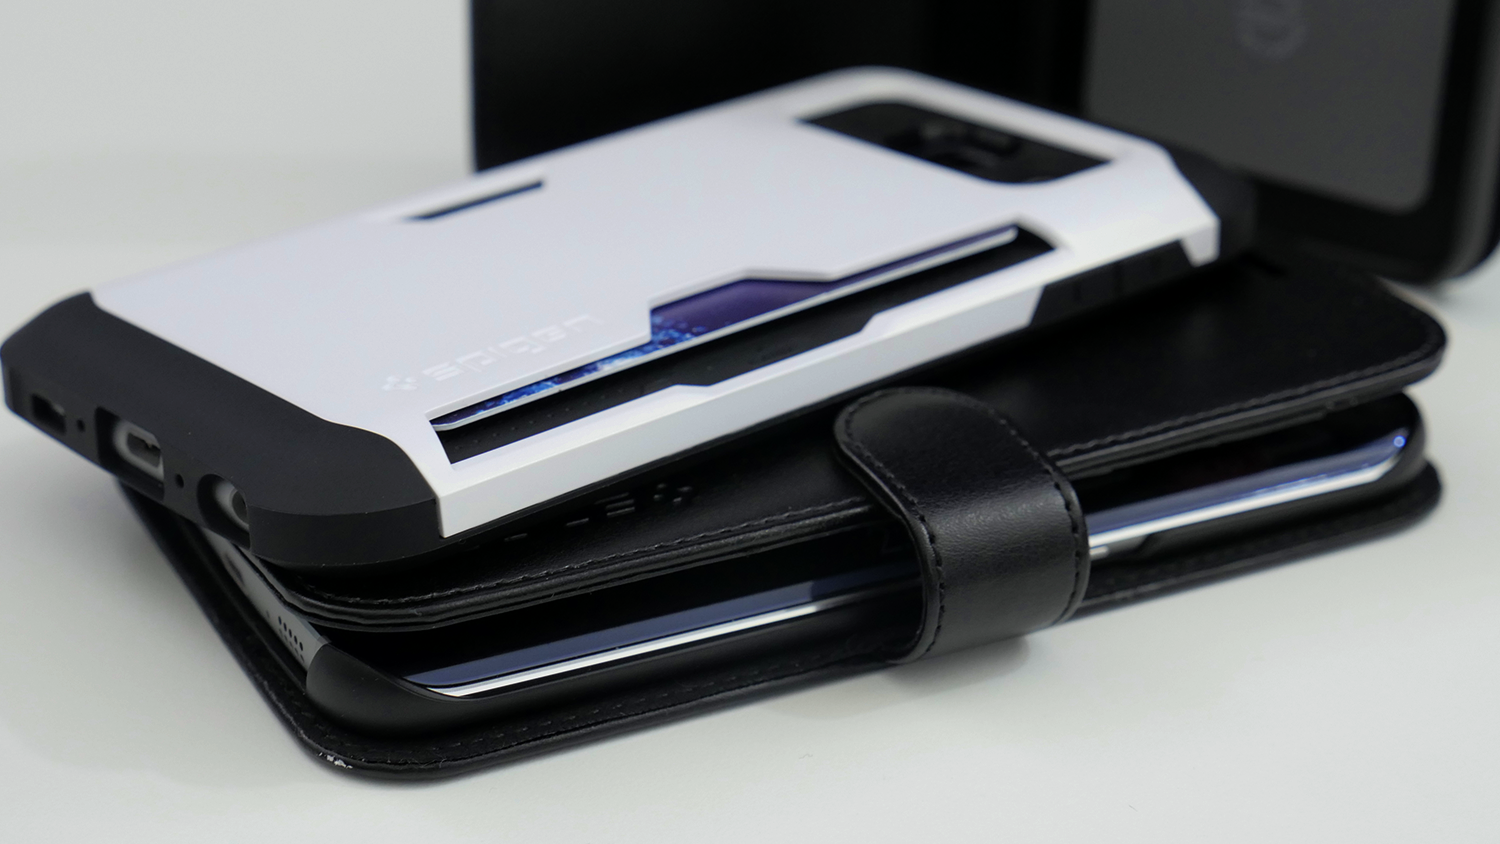 2c95df800ce The ultimate guide to Spigen s Galaxy S6 and S6 Edge cases - 9to5Google